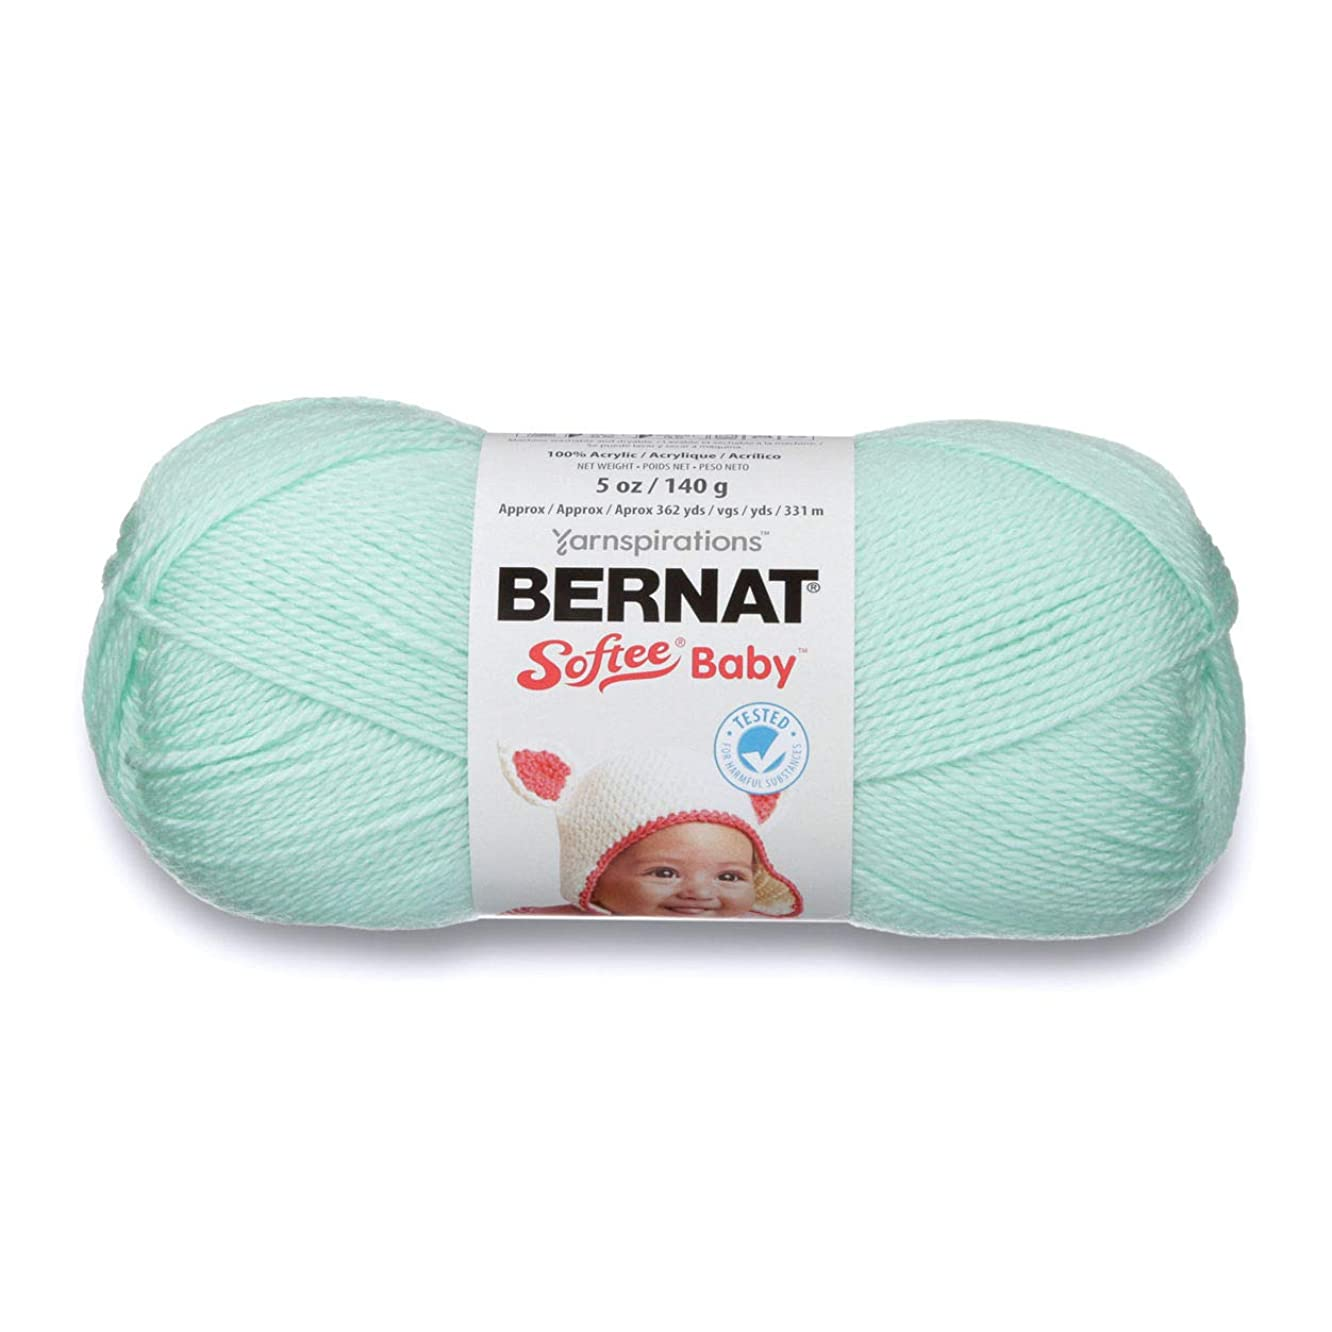 Bernat Softee Baby Yarn, 5 oz, Gauge 3 Light, Mint